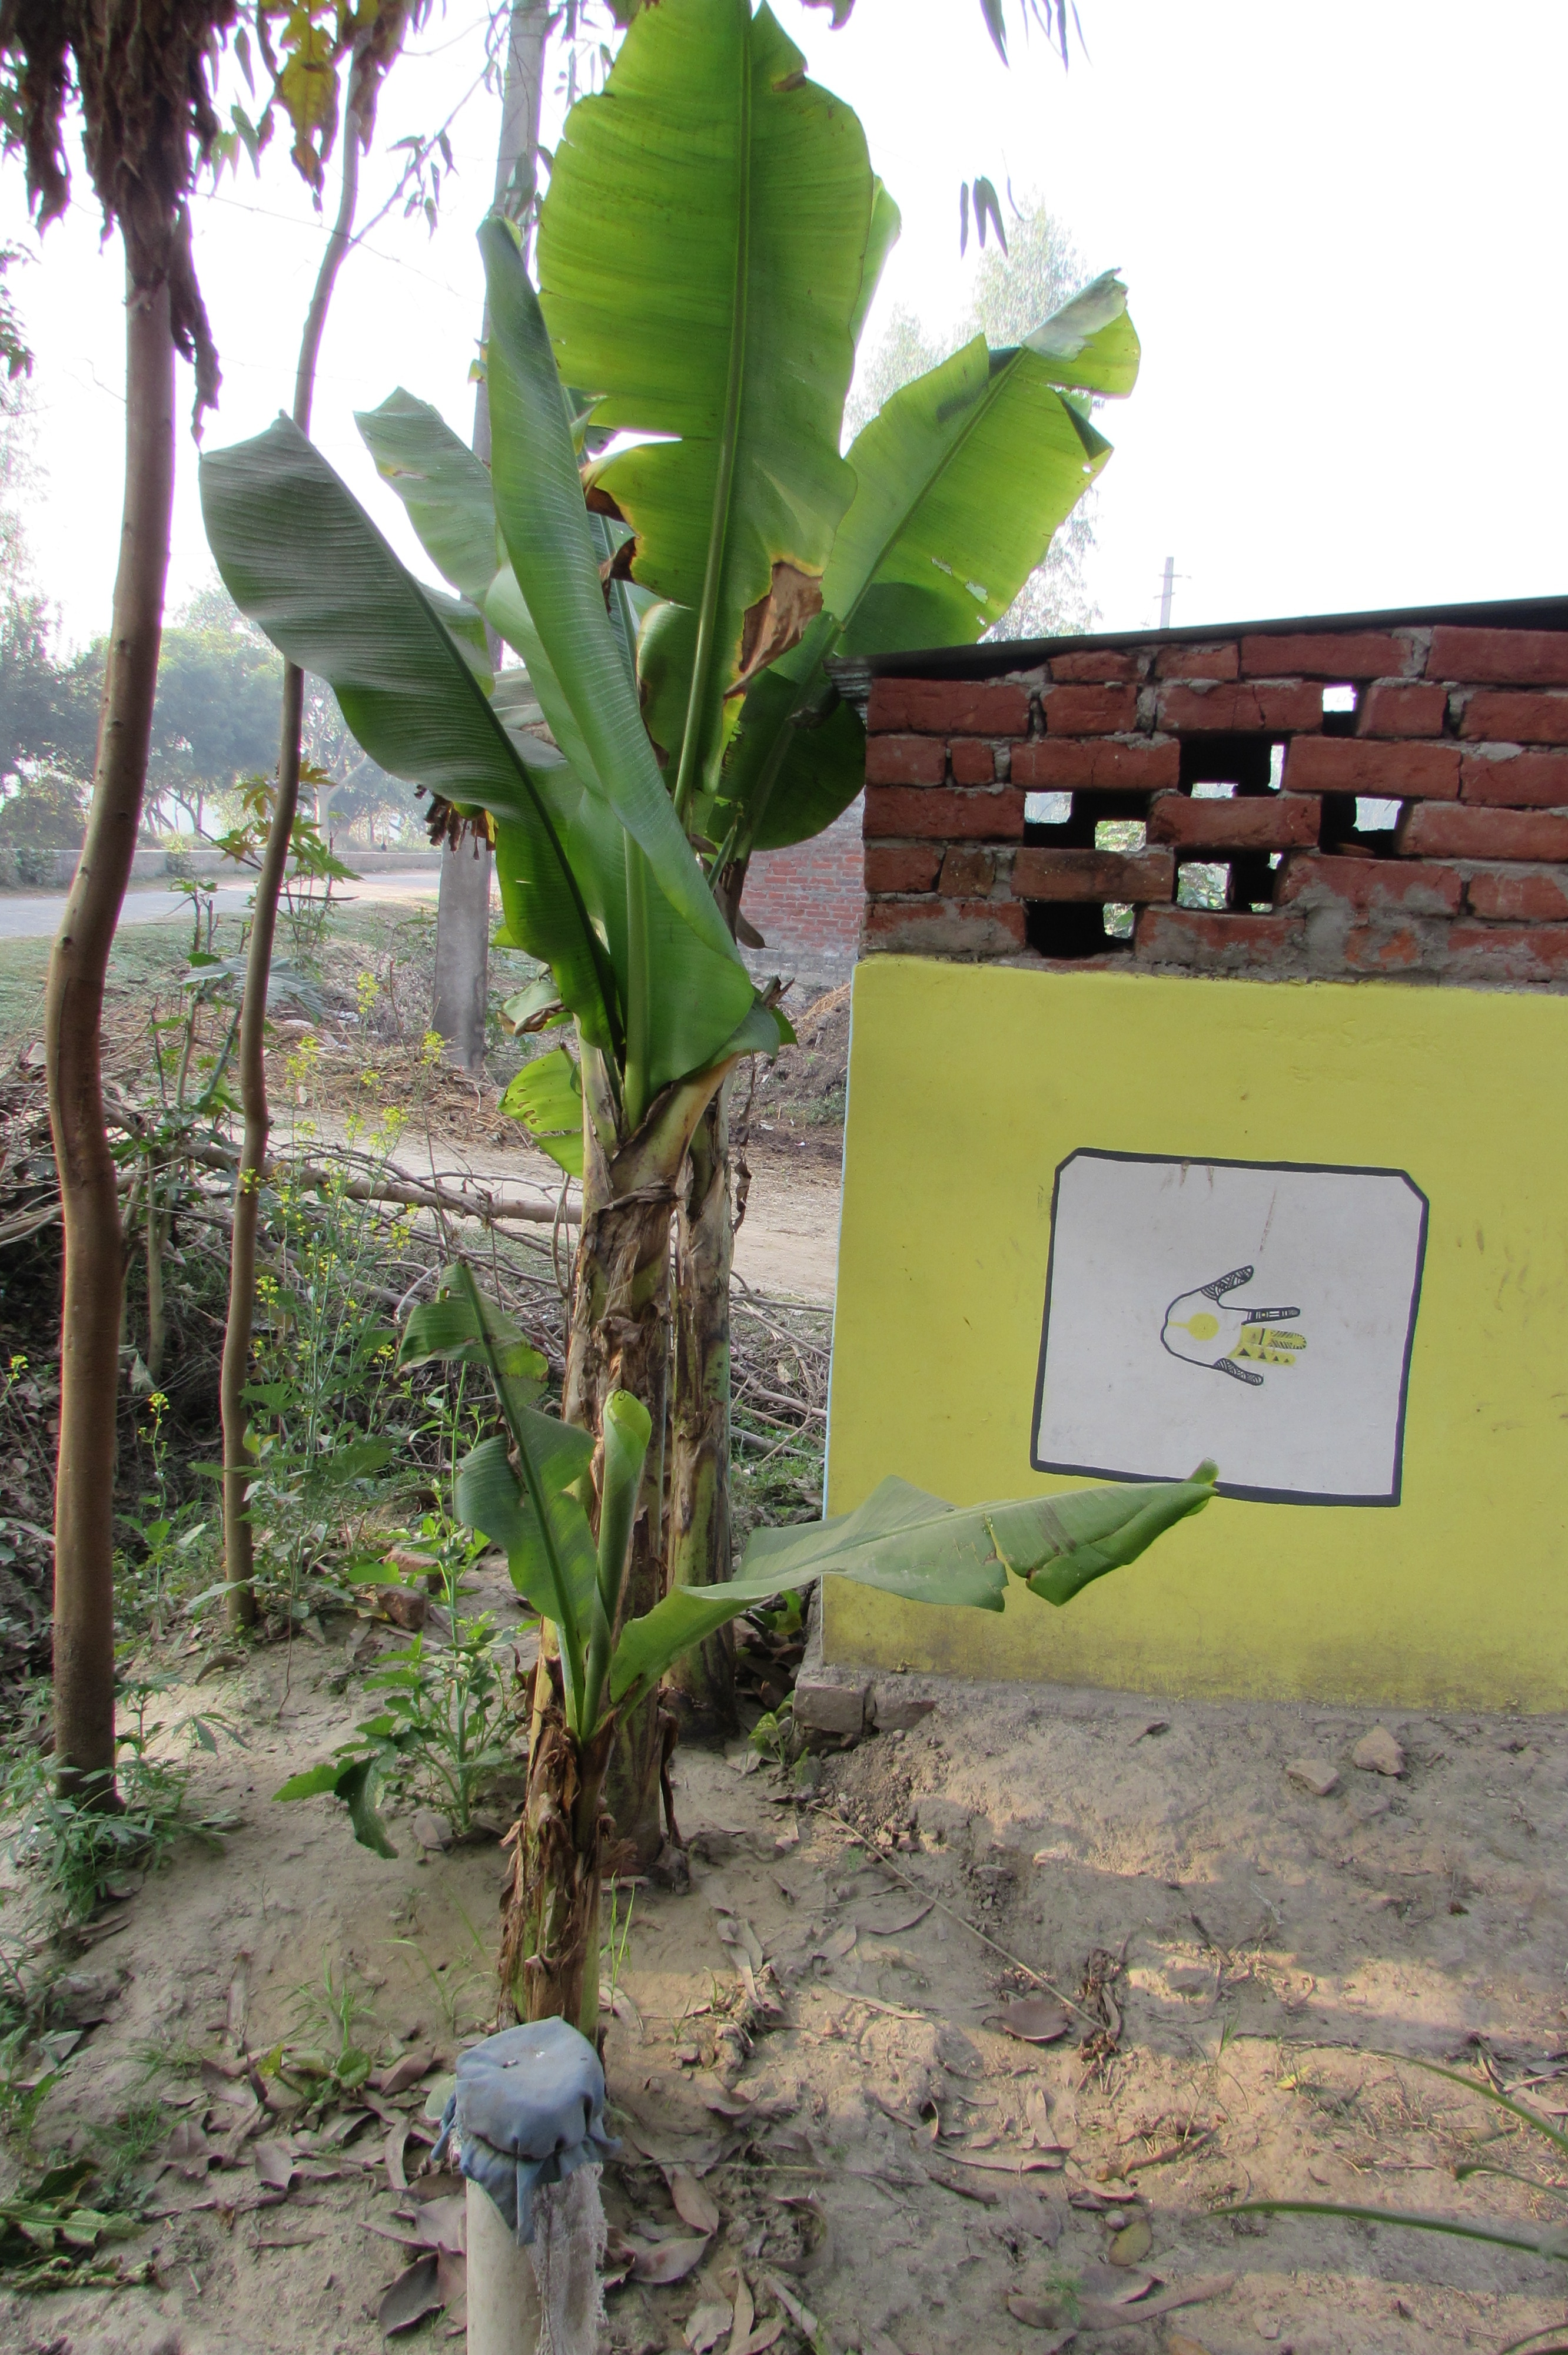 This Is How An American Woman Is Challenging Open Defecation In Rural India